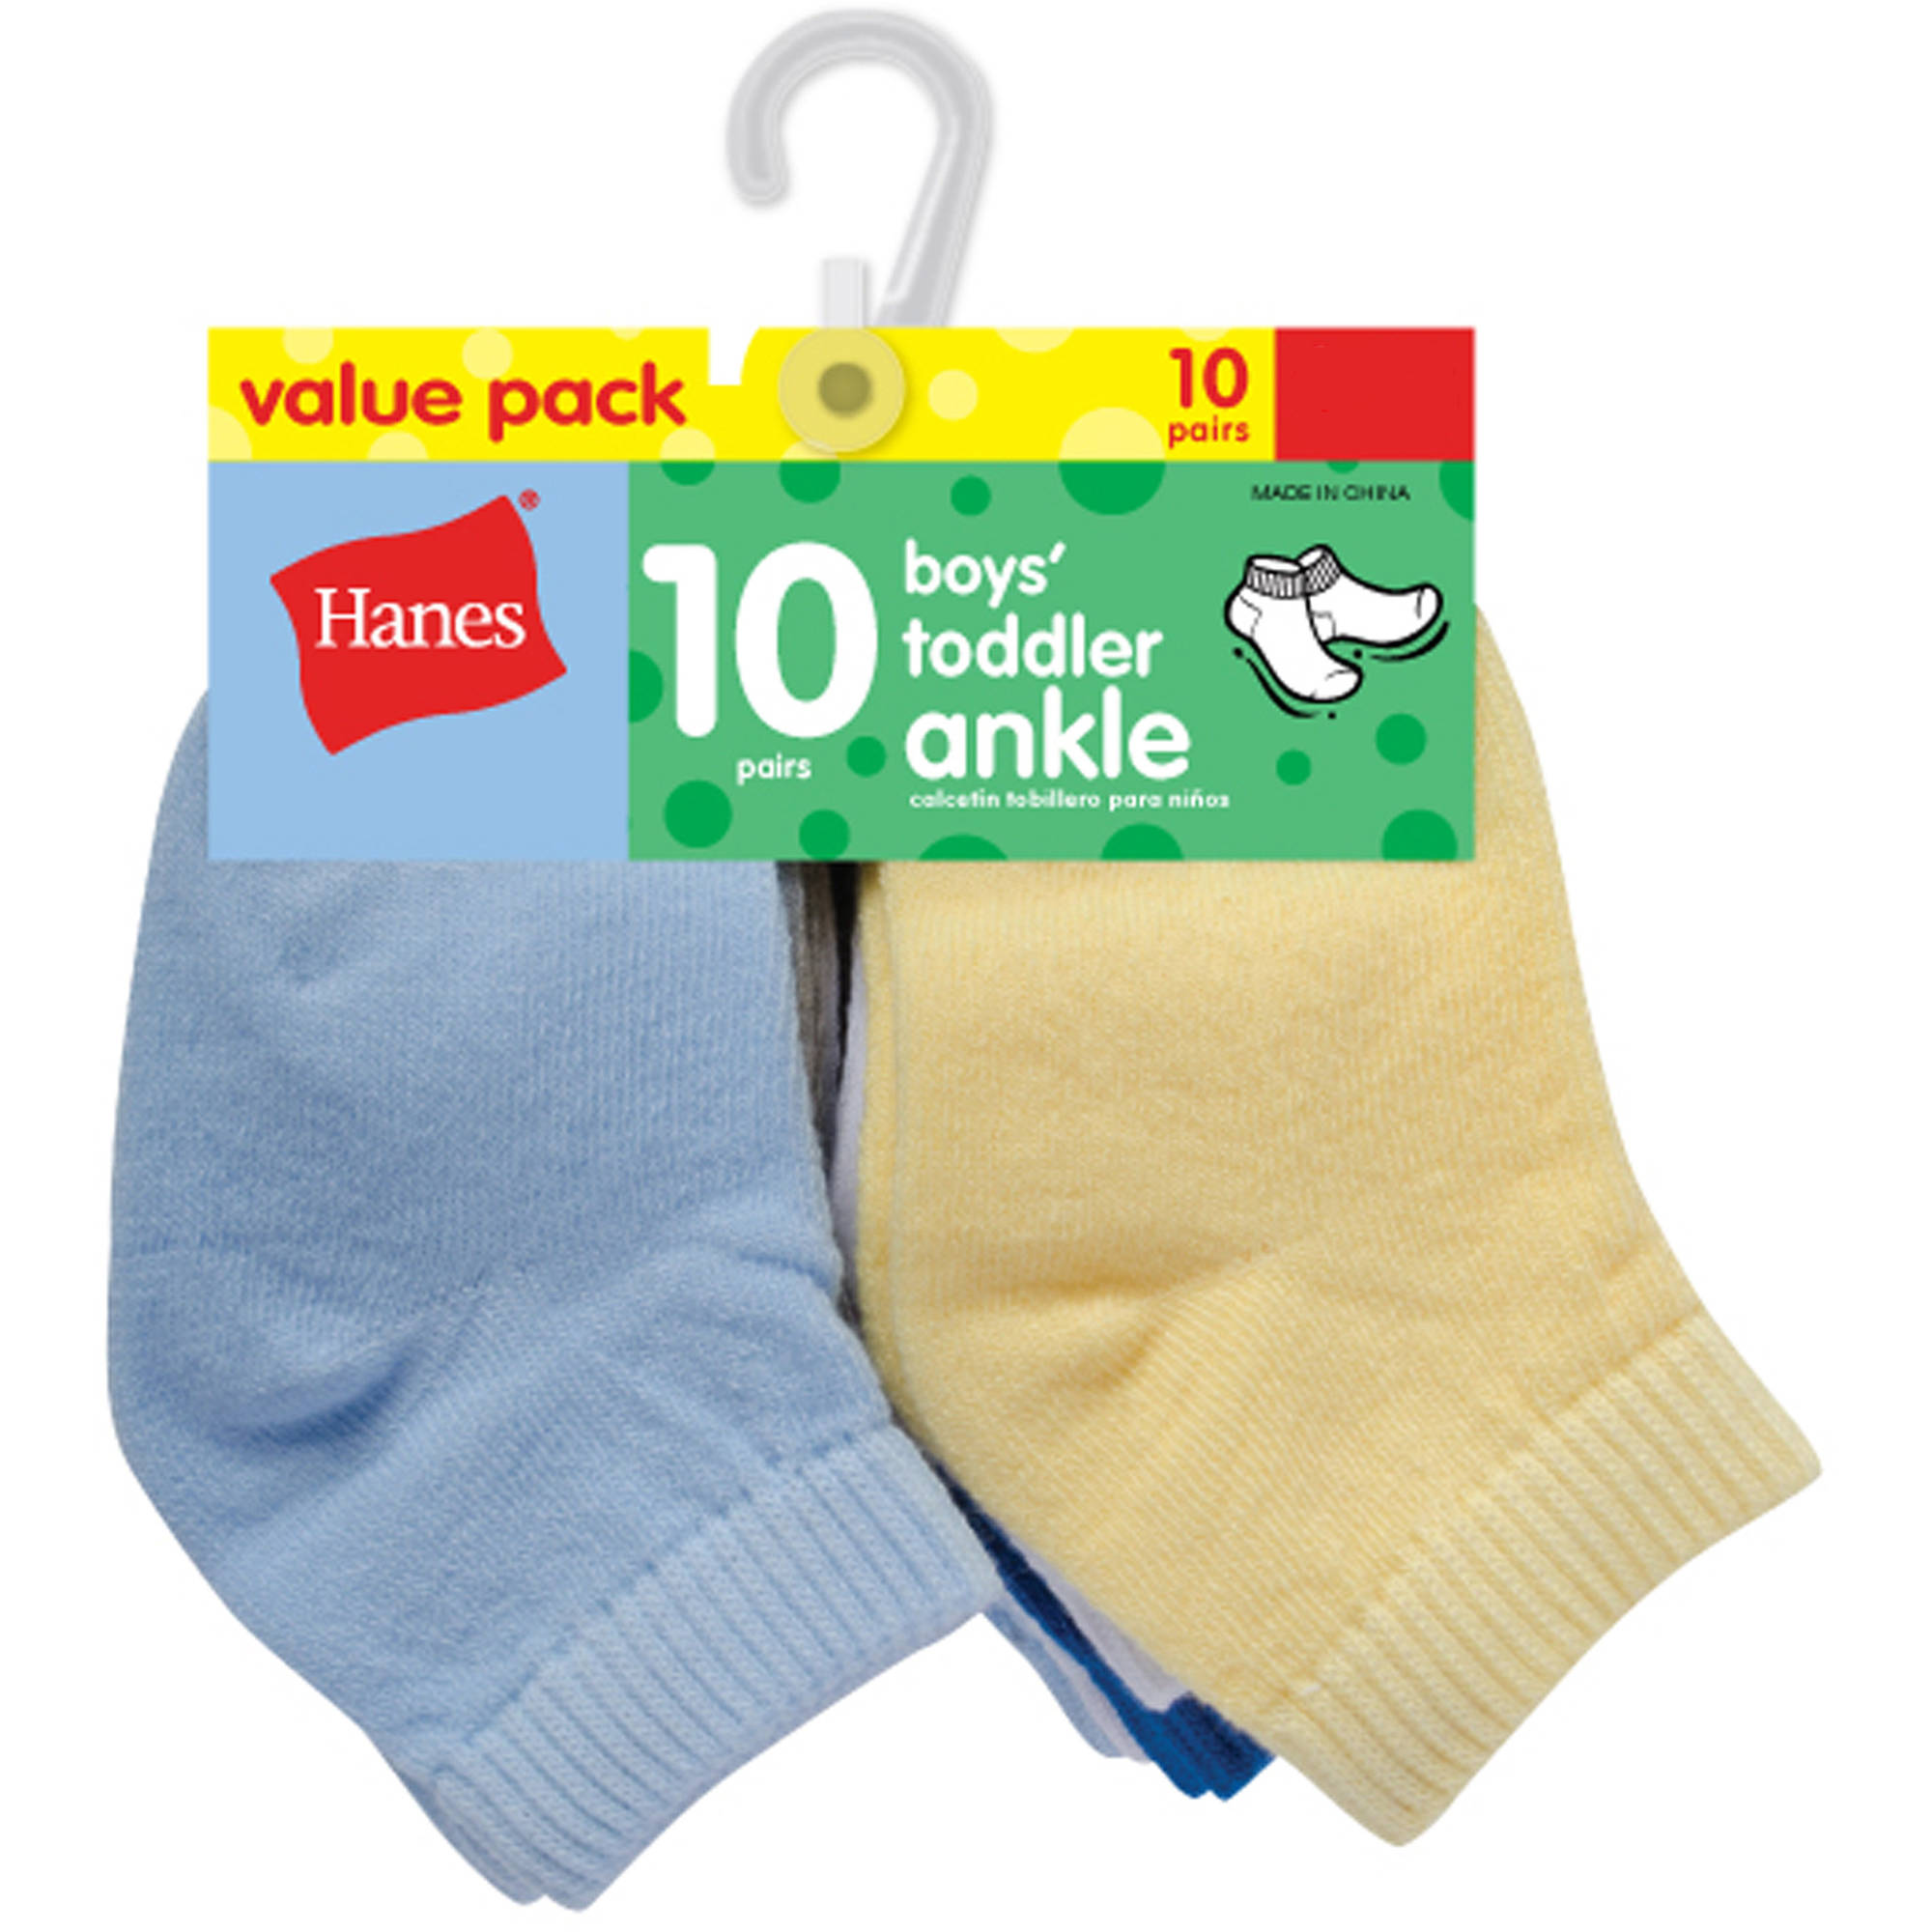 Hanes Newborn Baby Boy Ankle Socks - 10 Pack